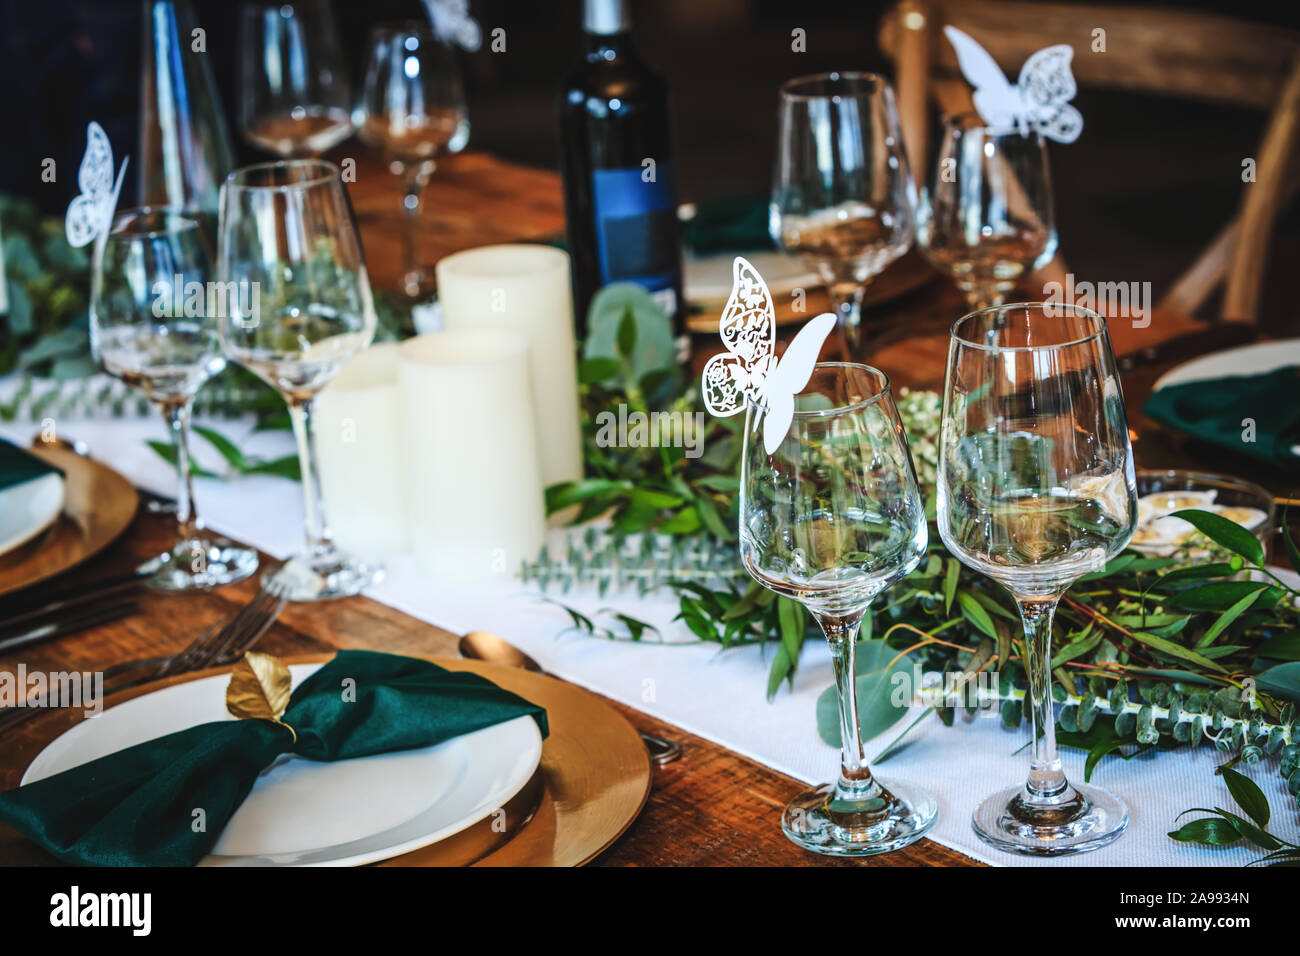 Rustic Wedding Table Setting In Fancy American Restaurant Vintage Decoration Of Reception Table Elegant Arrangement Of The Holiday Tableware Wine G Stock Photo Alamy